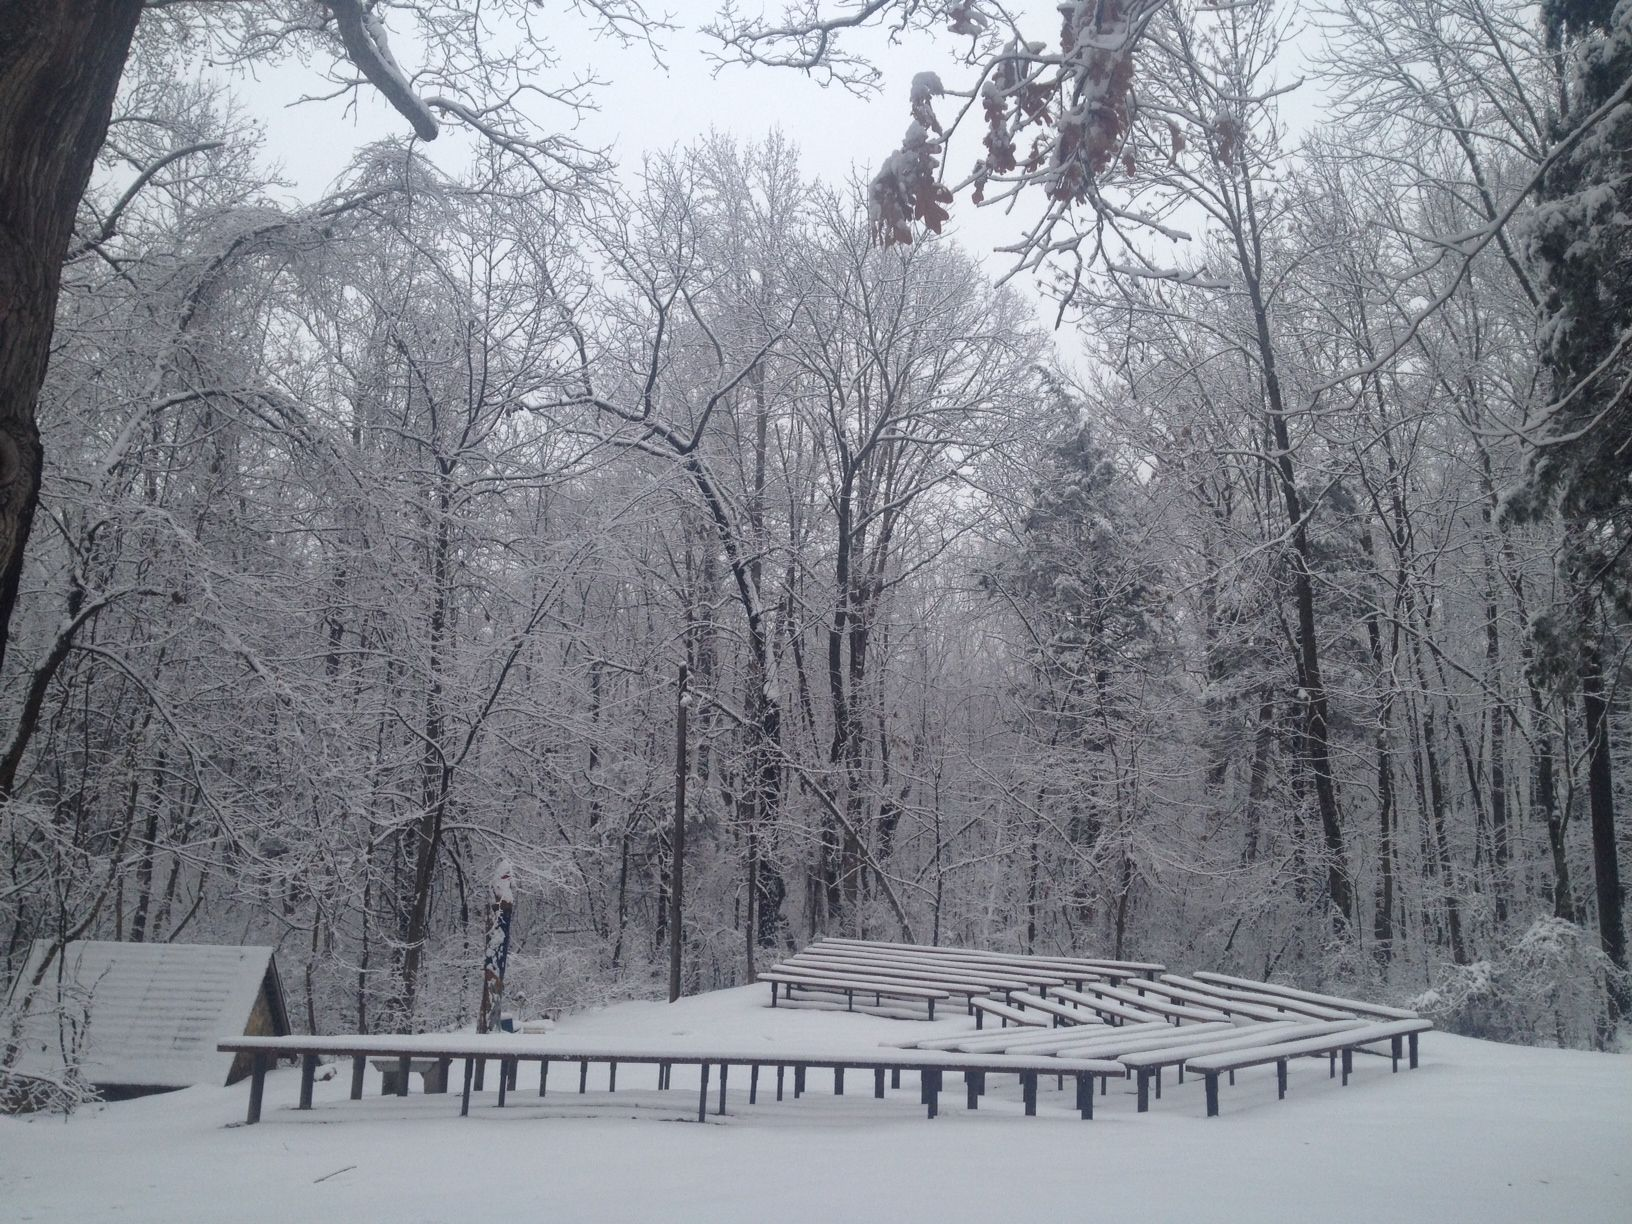 Camp Horizons covered in snow! #snow #camp